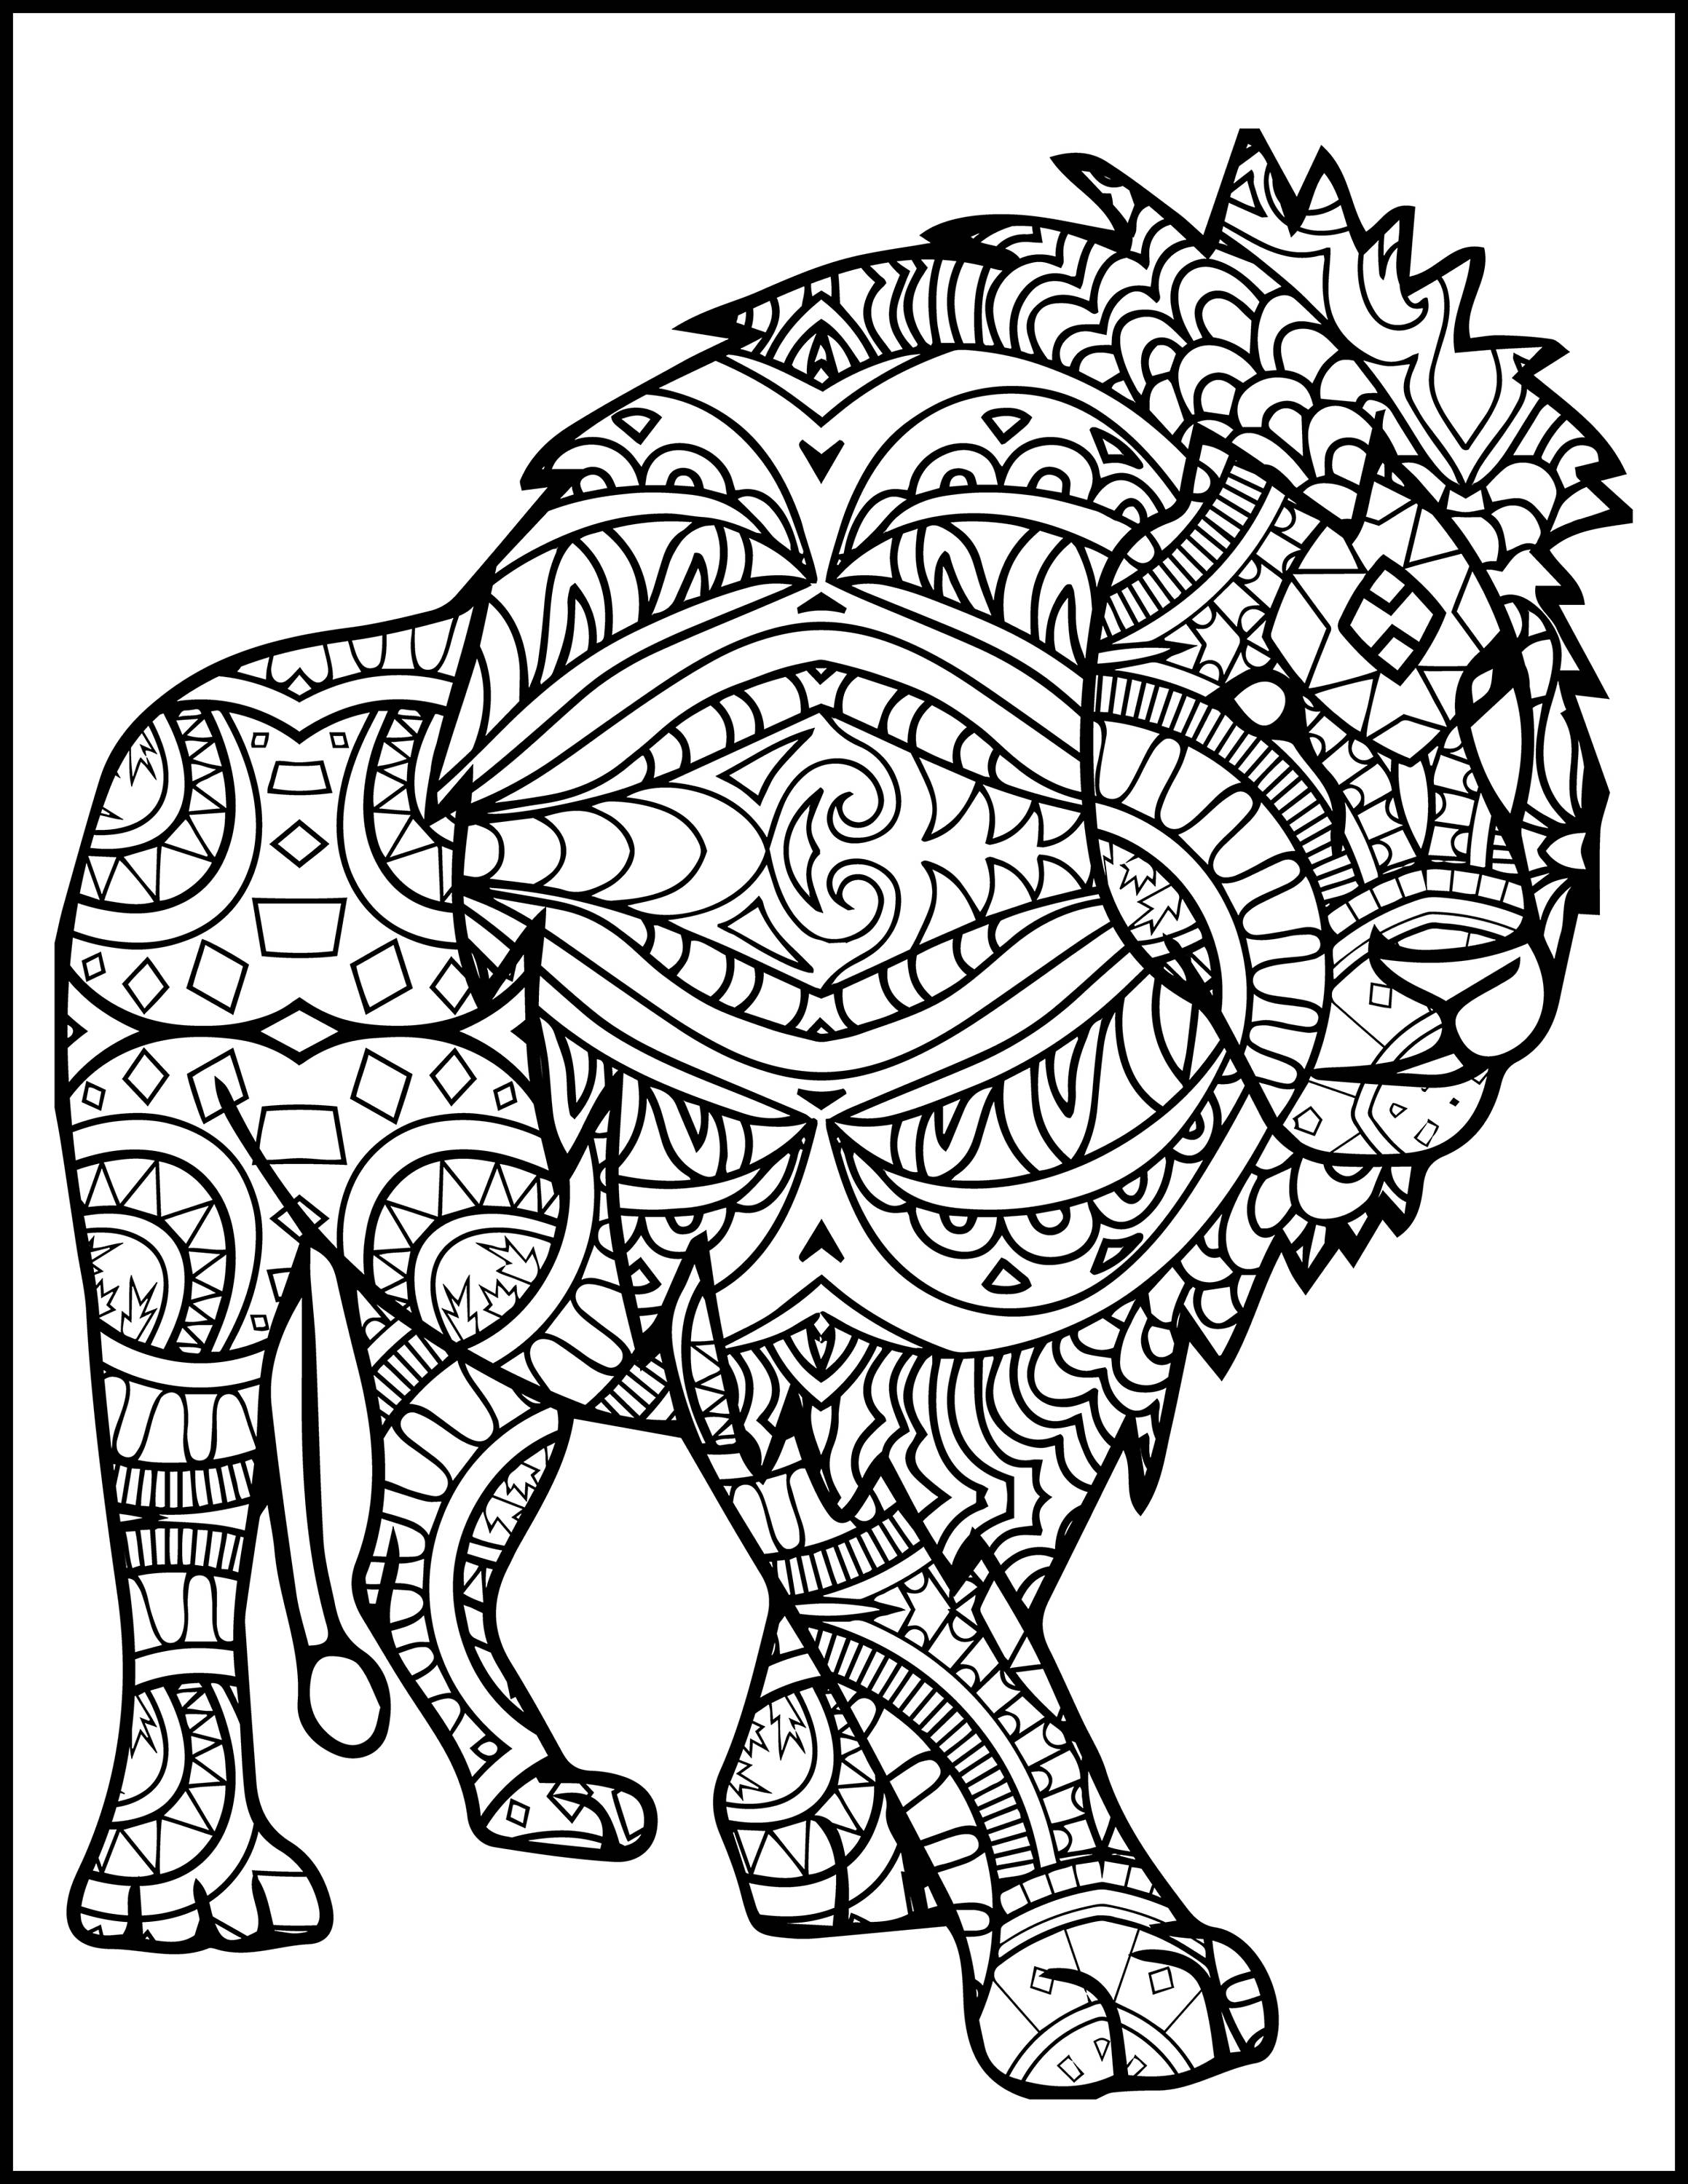 Delicate image intended for free printable lion coloring pages